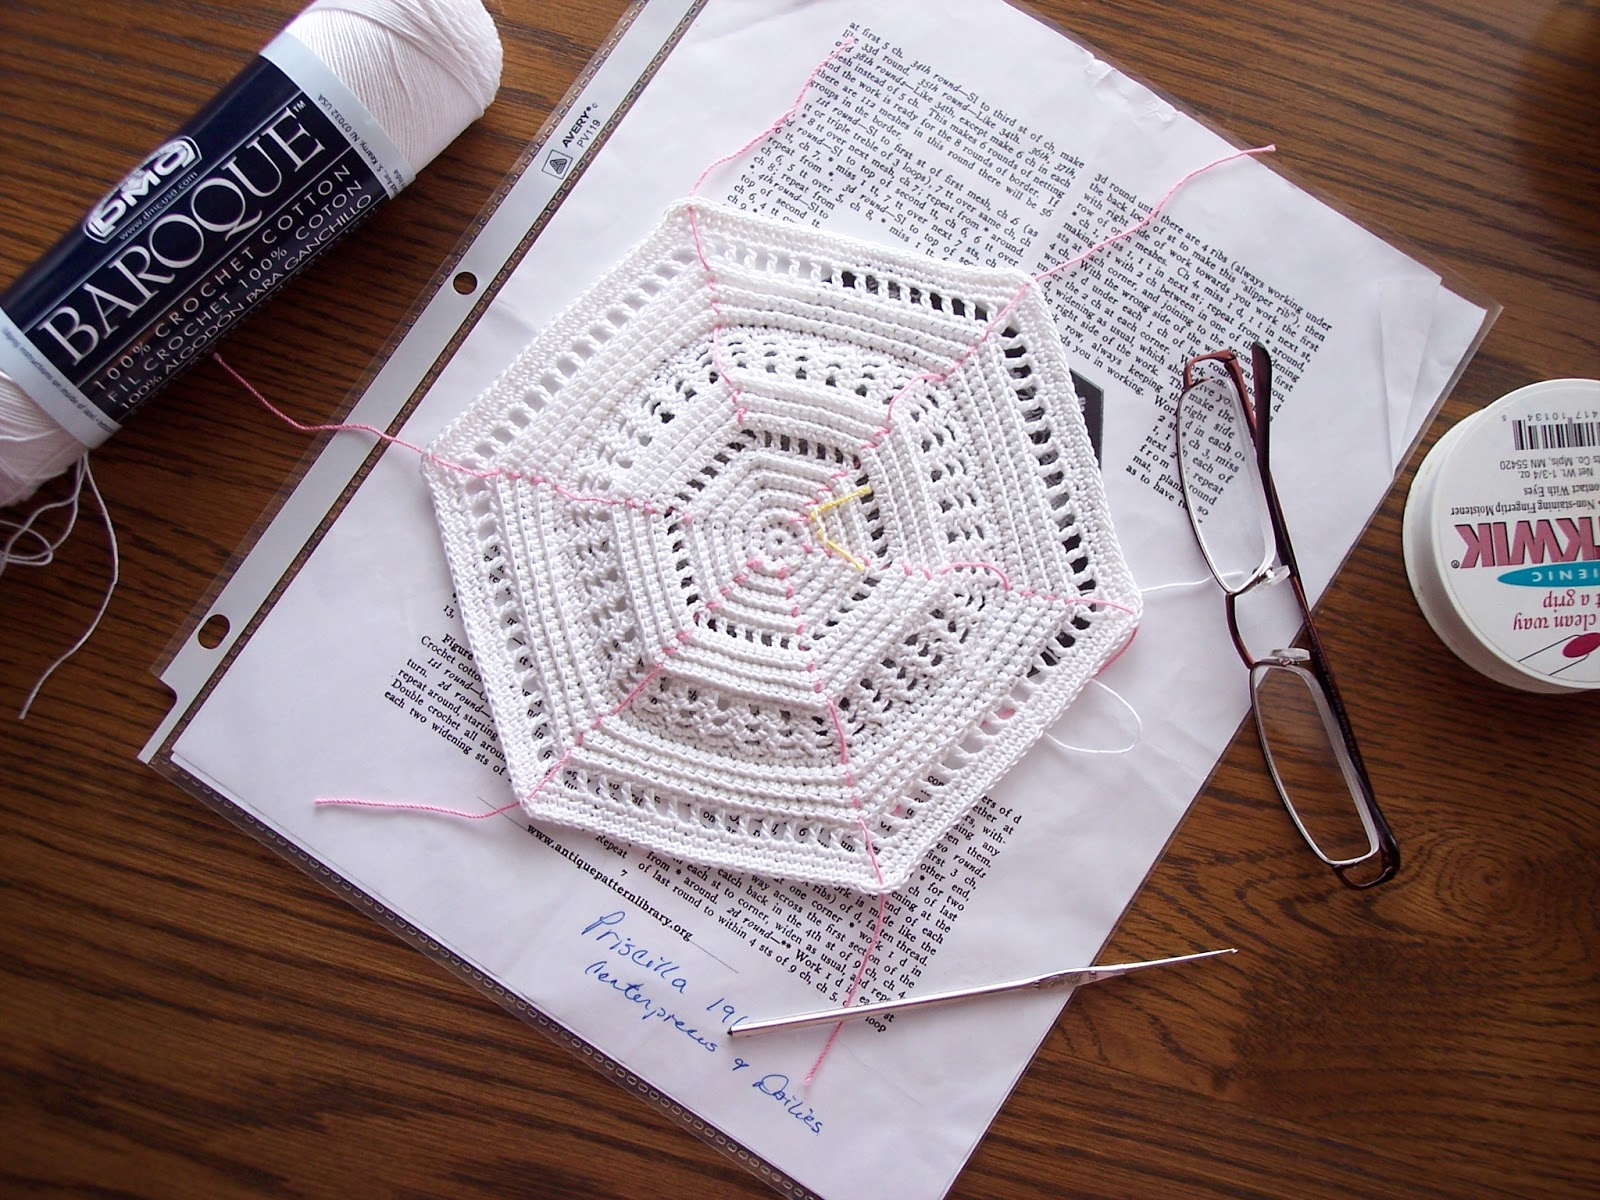 Getting Started With Thread Crochet